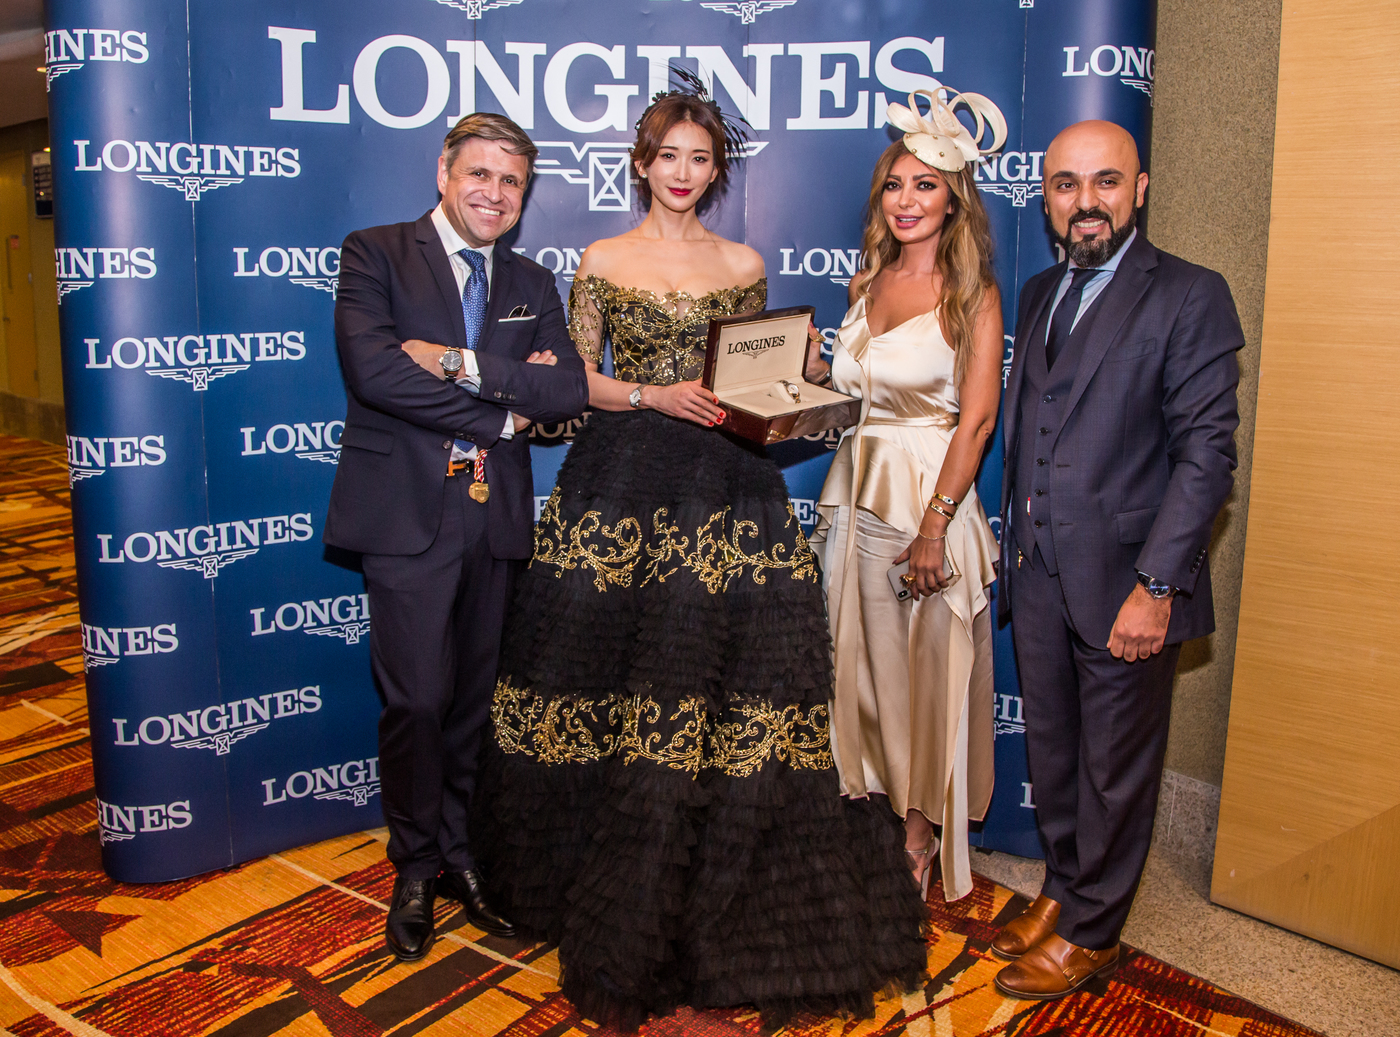 Longines Flat Racing Event: The Dubai World Cup:  Hawkbill steals the limelight in the Longines Dubai Sheema Classic race  6